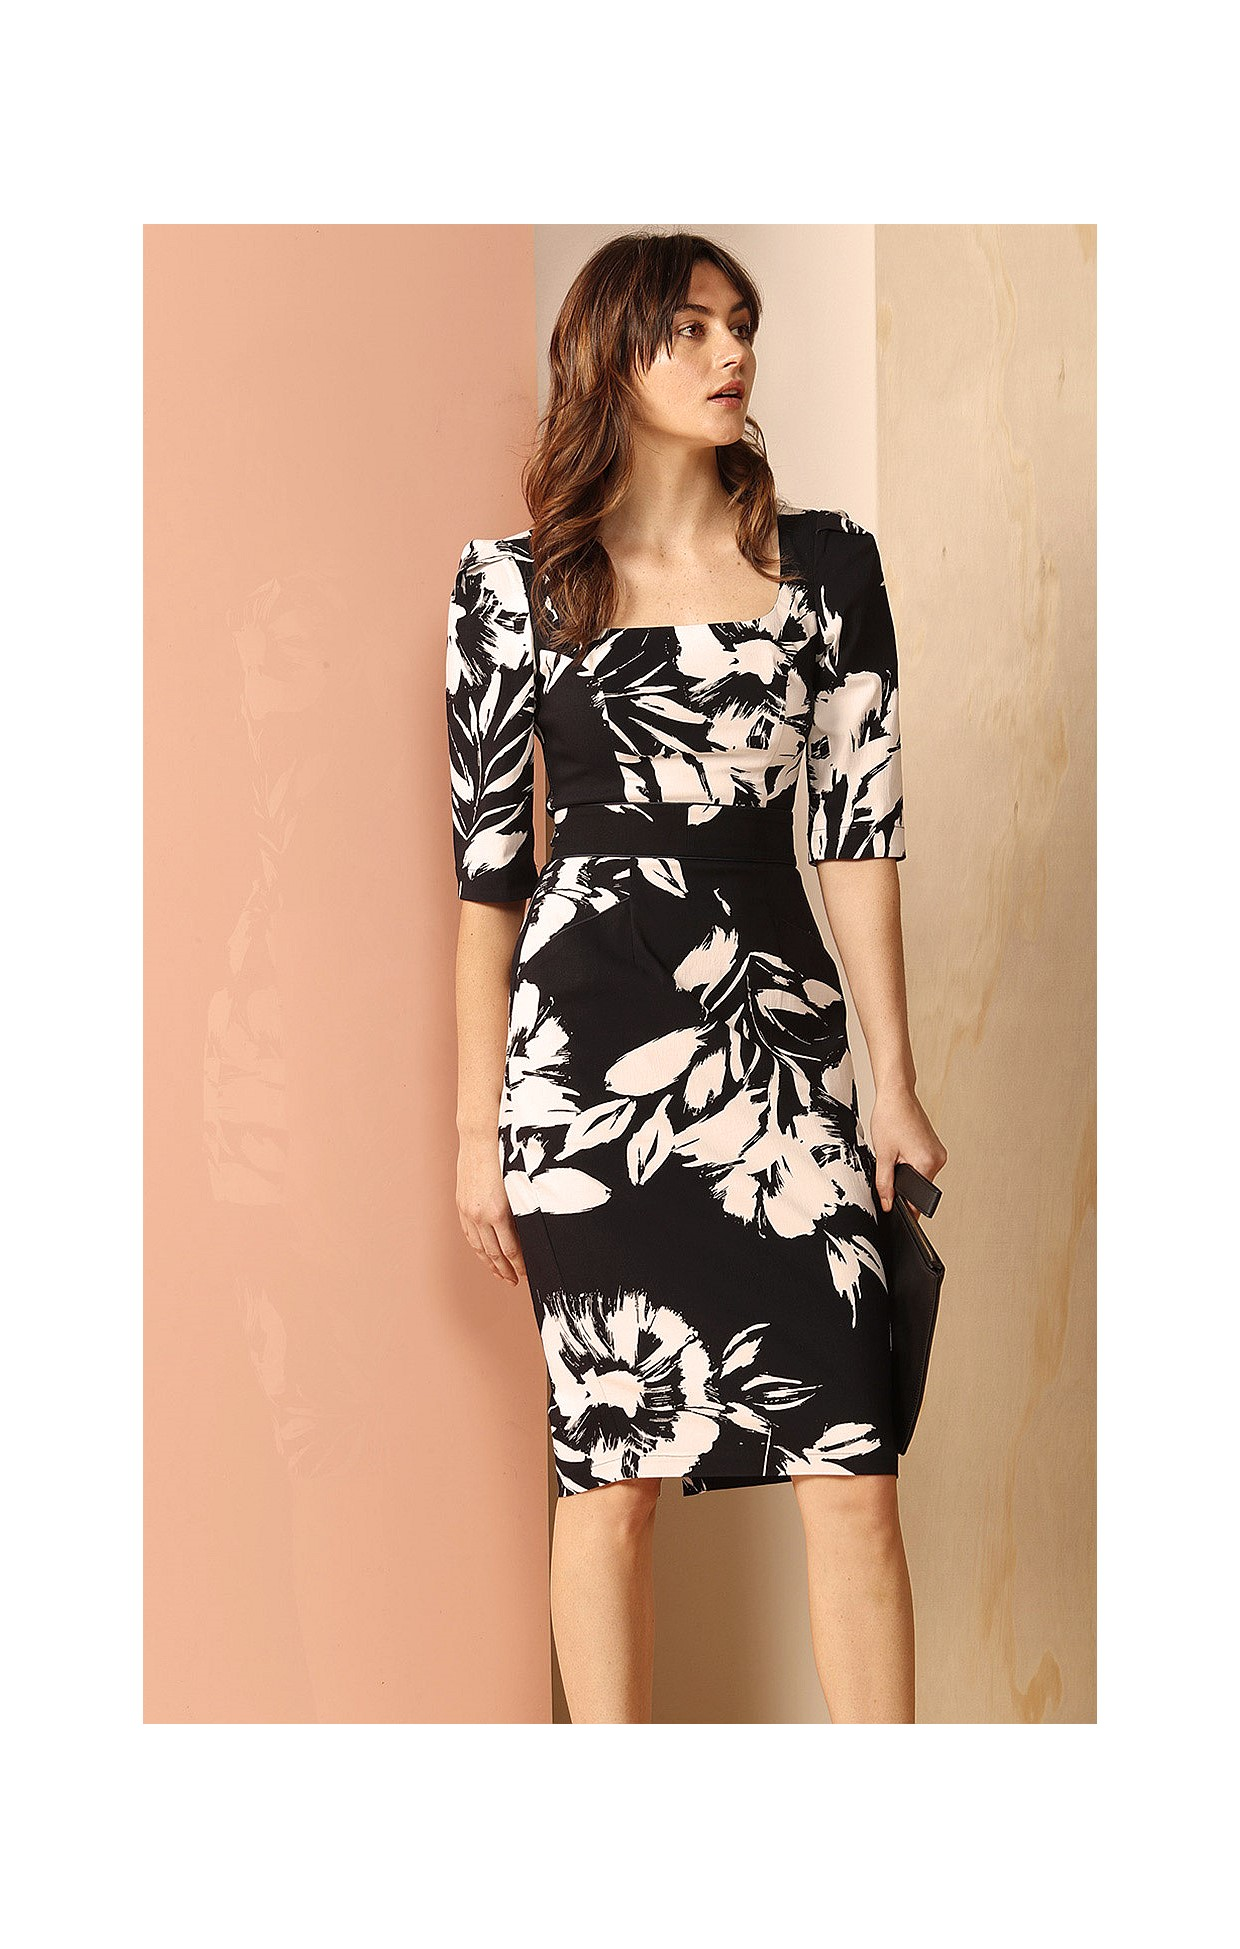 Shop dresses rumsey stretch fitted belted 34 sleeve scoop neck rumsey stretch fitted belted 34 sleeve scoop neck dress in navy white flower print mightylinksfo